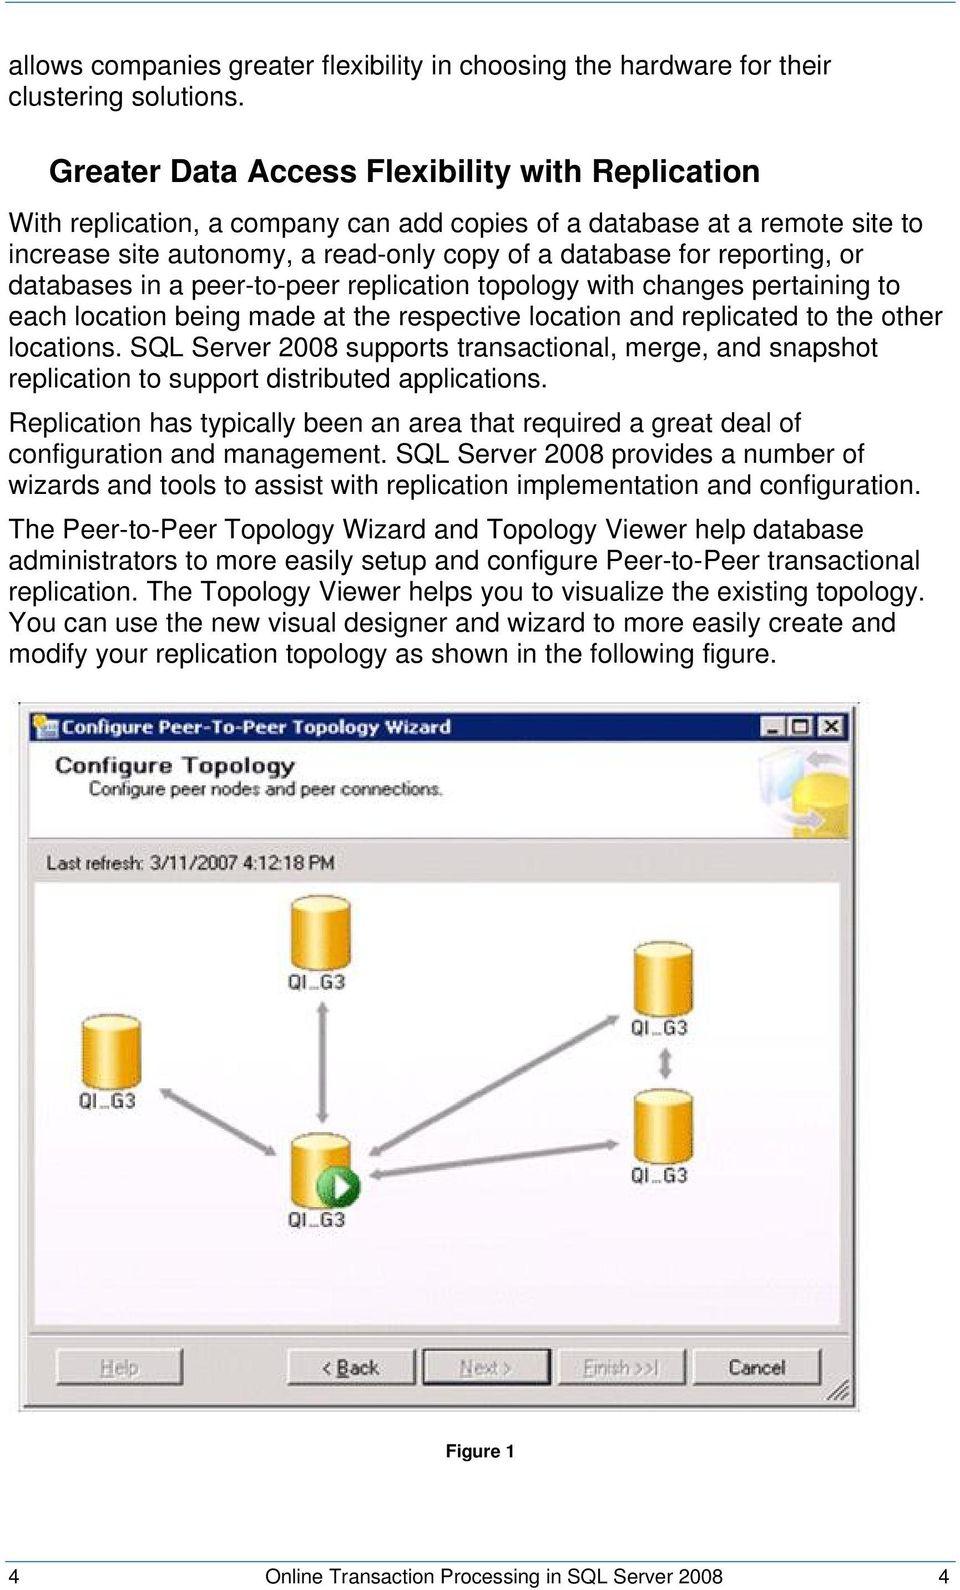 databases in a peer-to-peer replication topology with changes pertaining to each location being made at the respective location and replicated to the other locations.